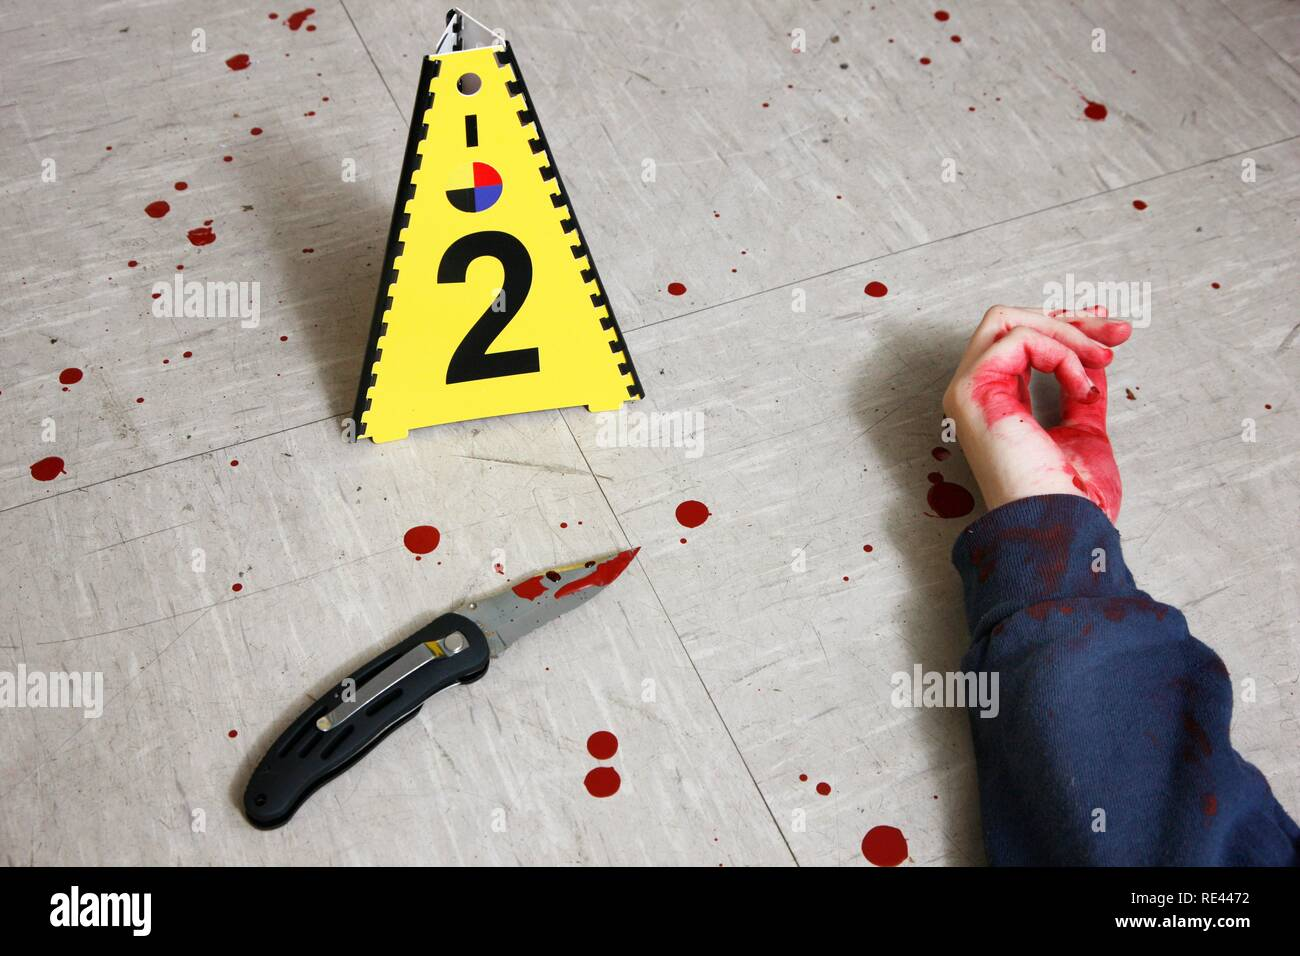 Securing Forensic Evidence At A Crime Scene After A Capital Offence Homicide By The C I D The Criminal Investigation Stock Photo Alamy